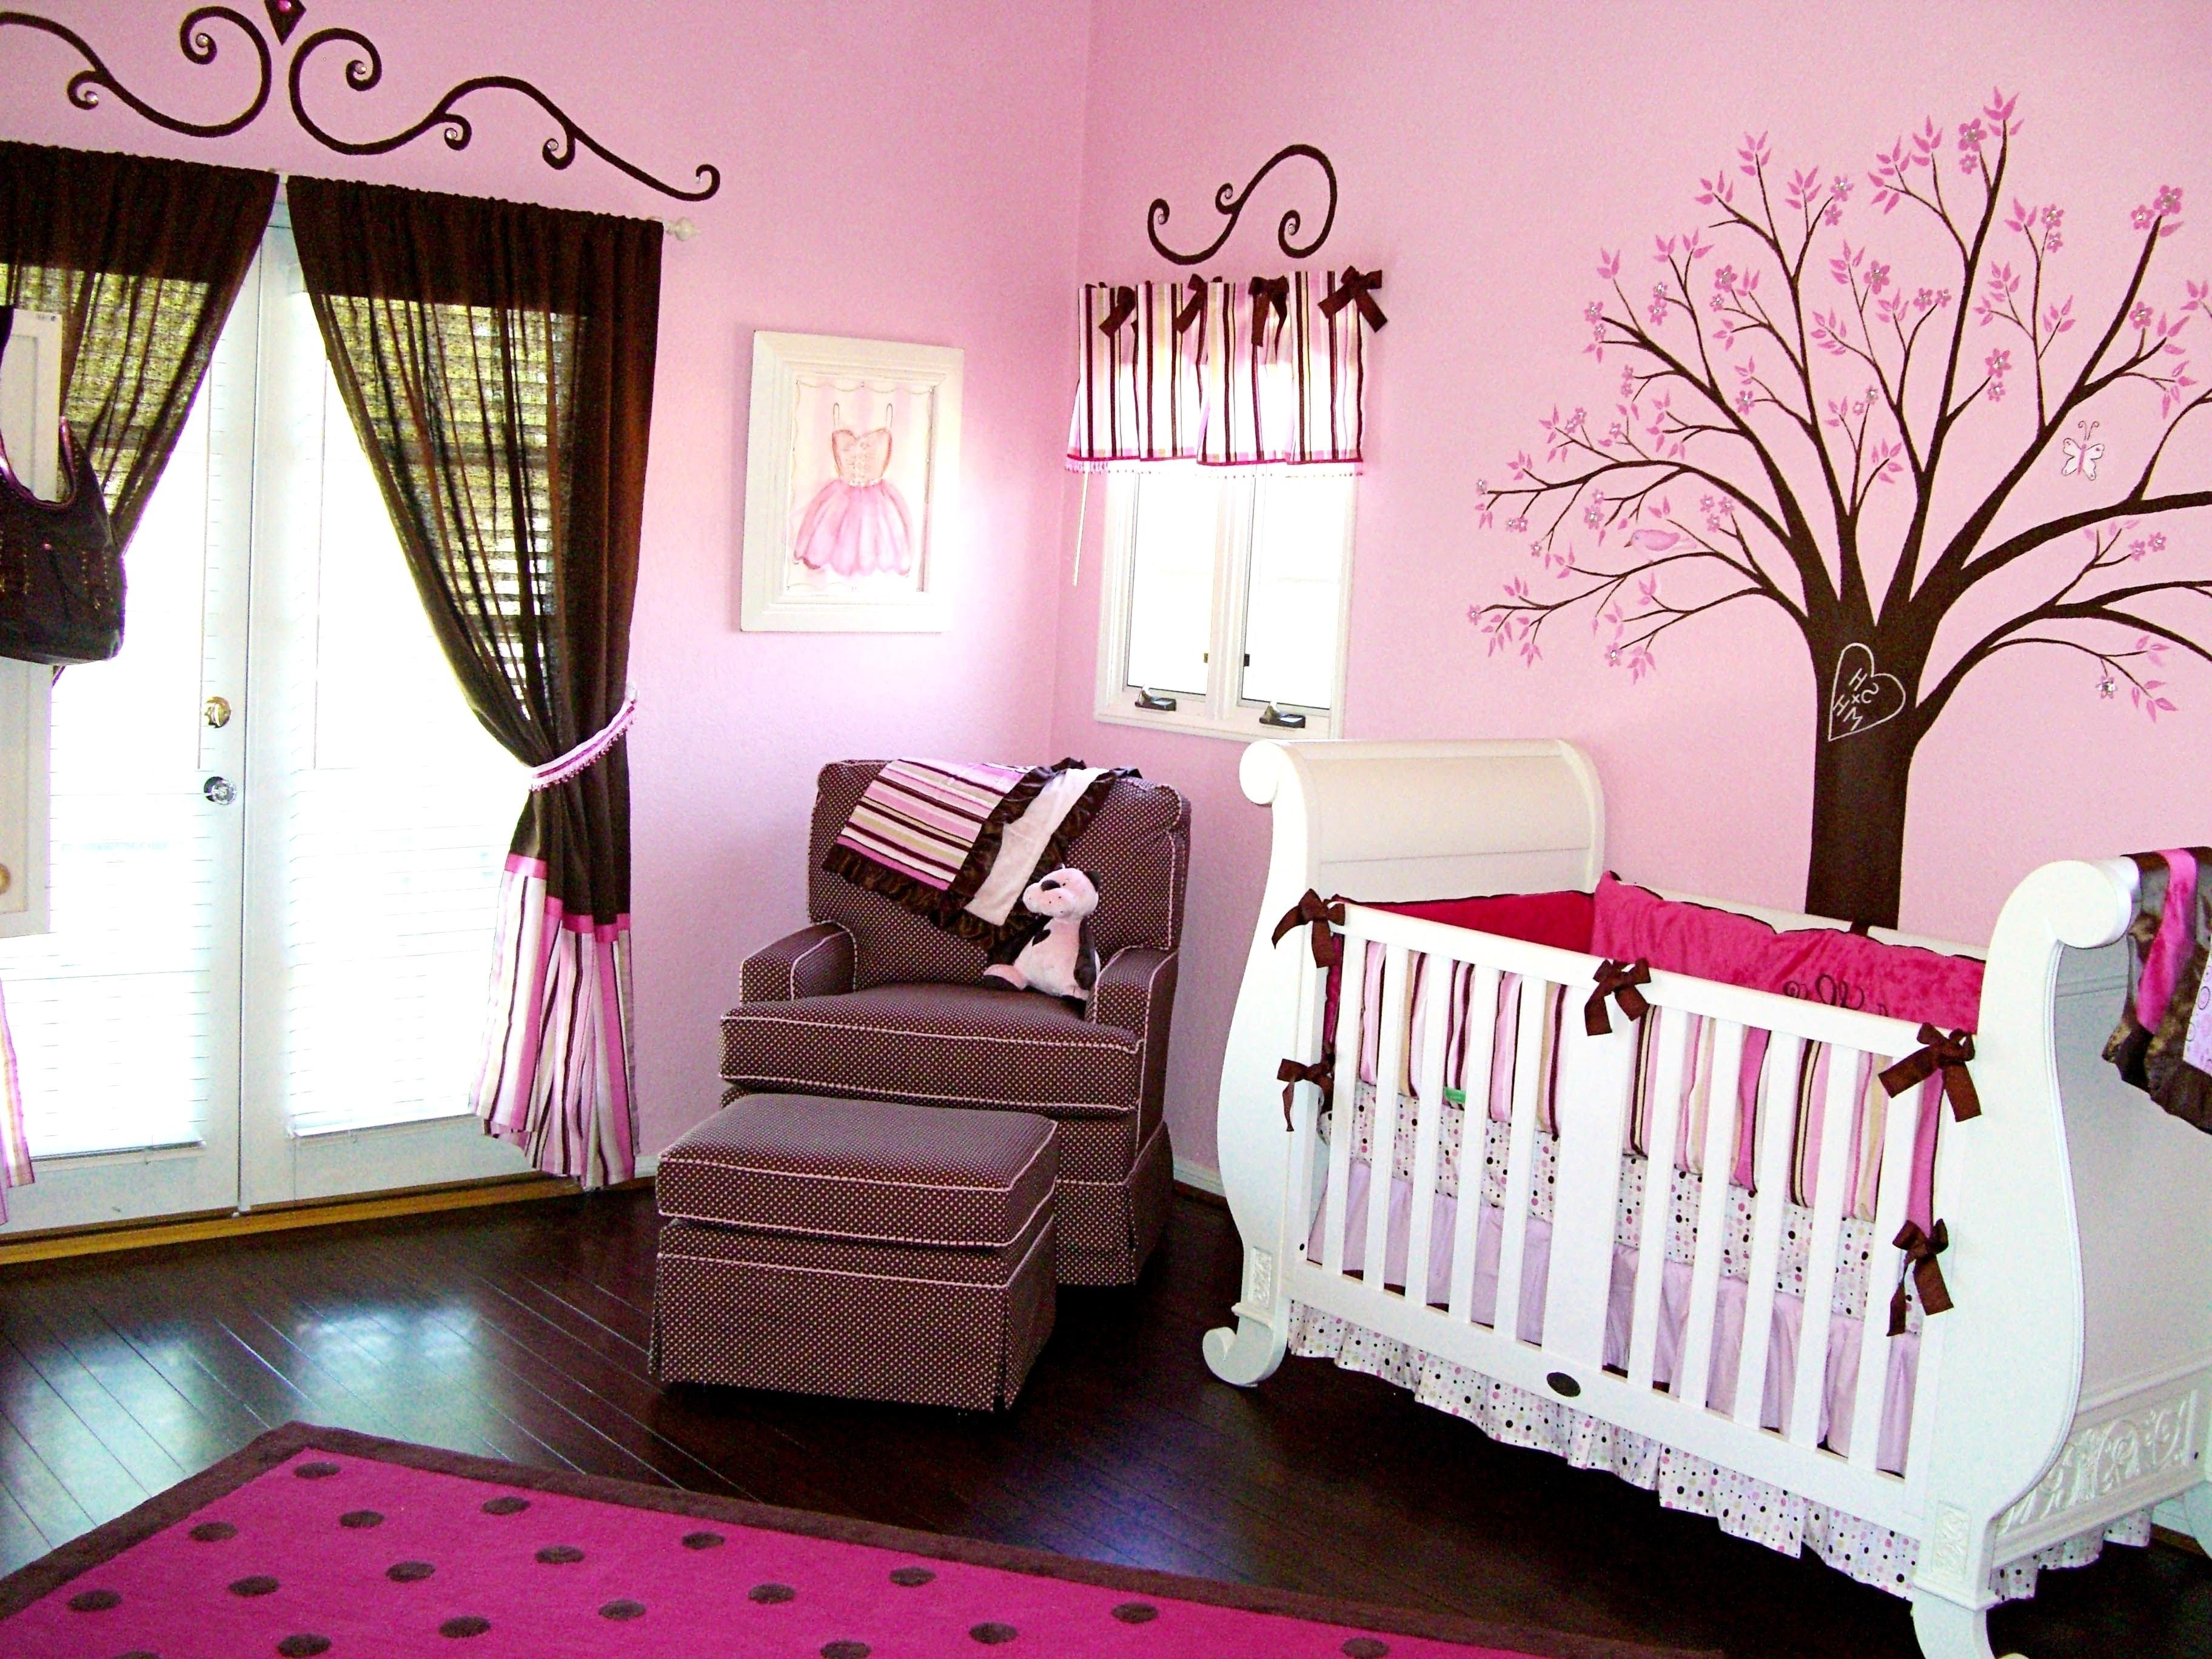 10 Ideal Baby Room Ideas For Girl lush baby girl room ideas girl nursery room decor a baby nursery 1